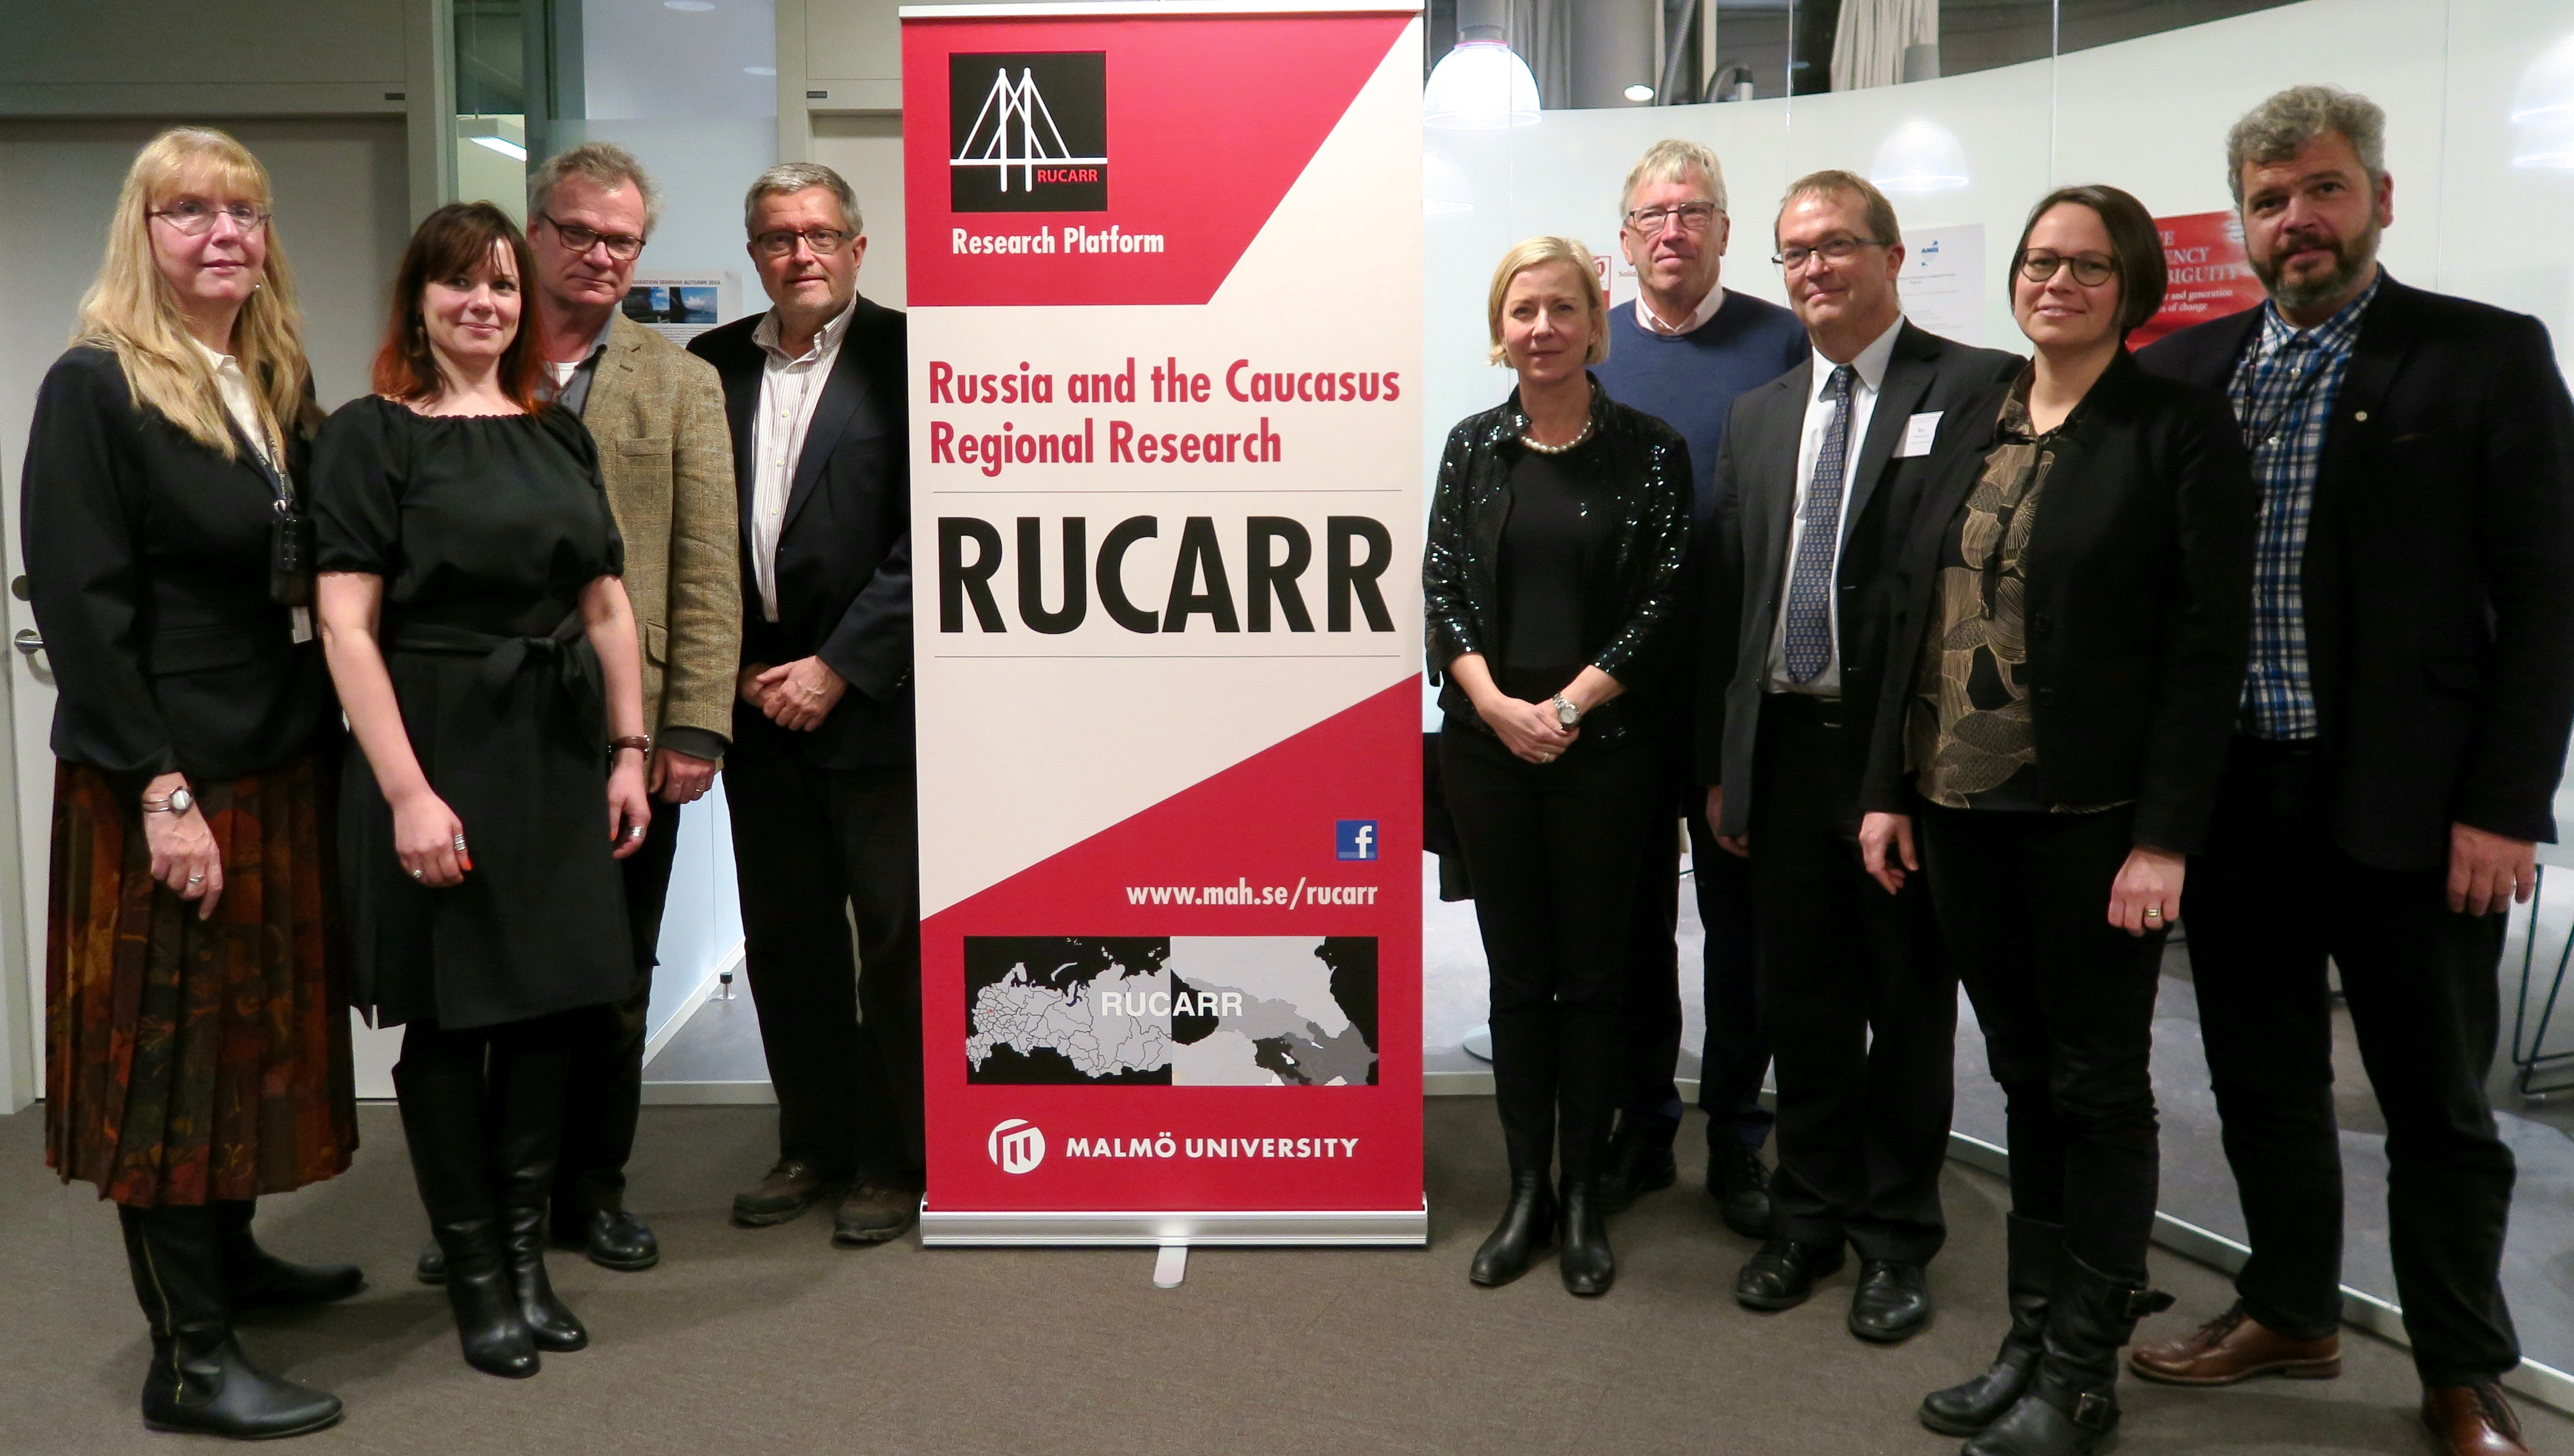 RUCARR – Advisory board